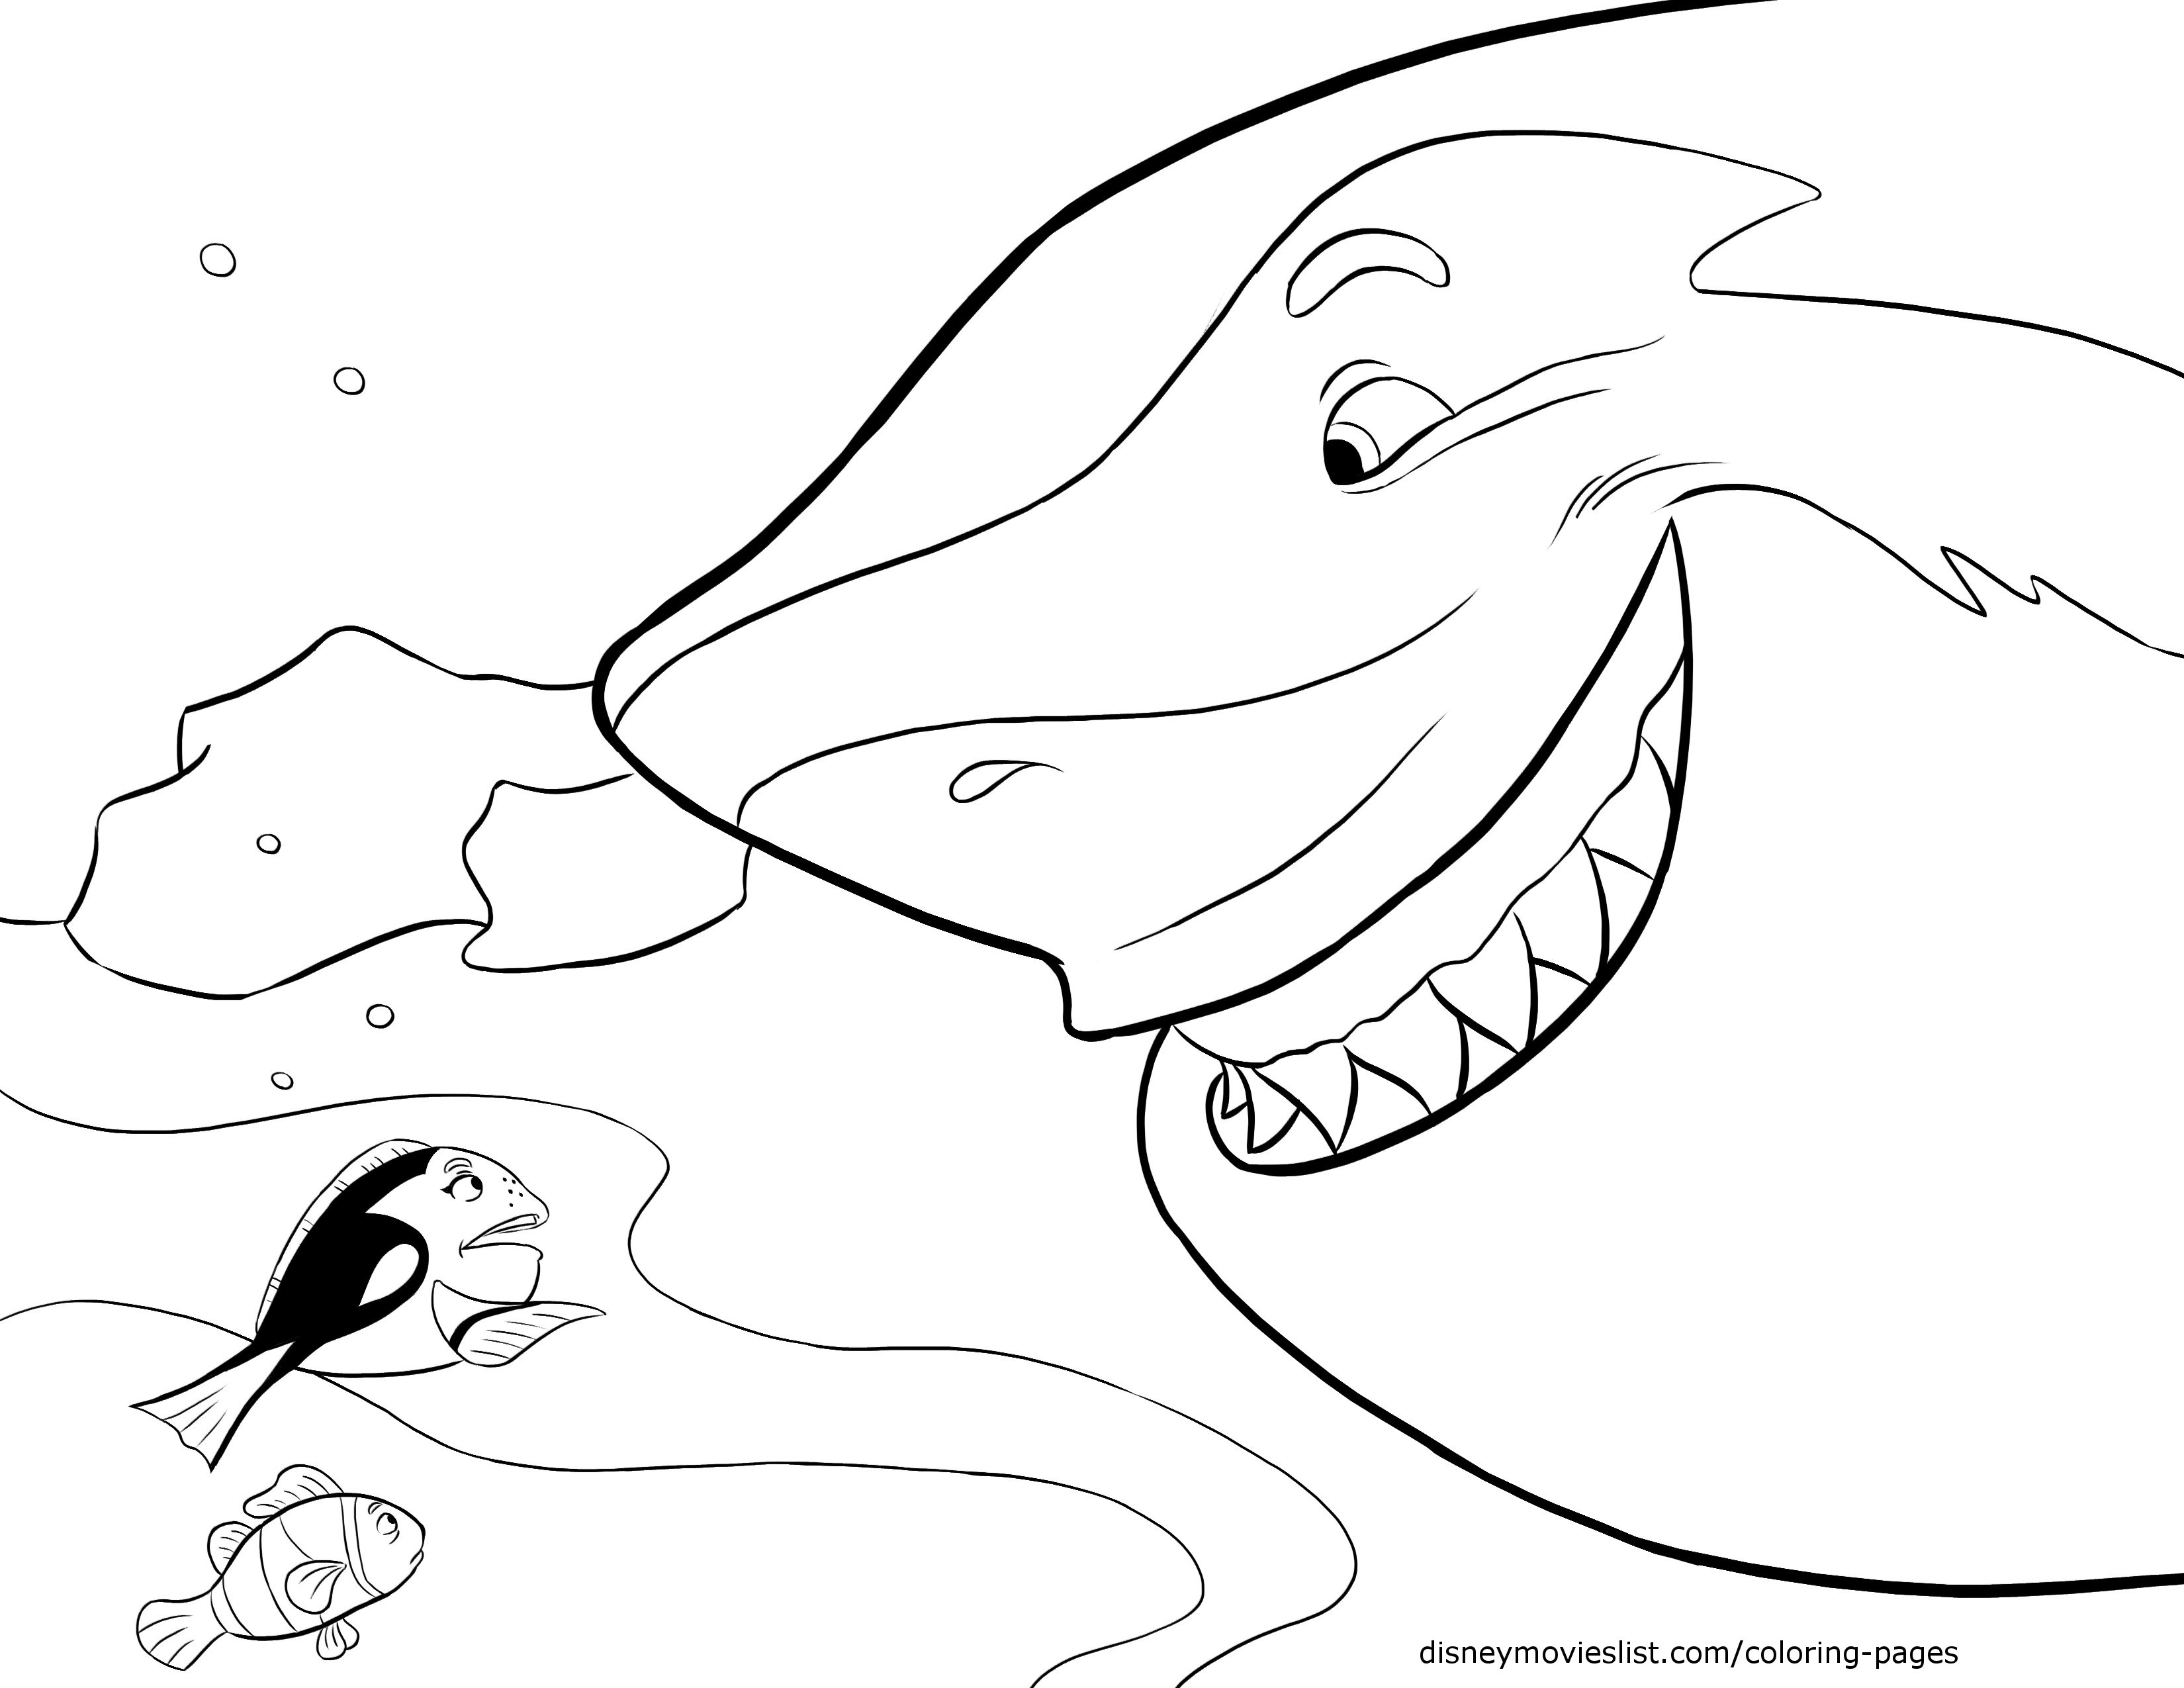 3300x2550 Download Coloring Pages. Nemo Coloring Pages Nemo Coloring Pages